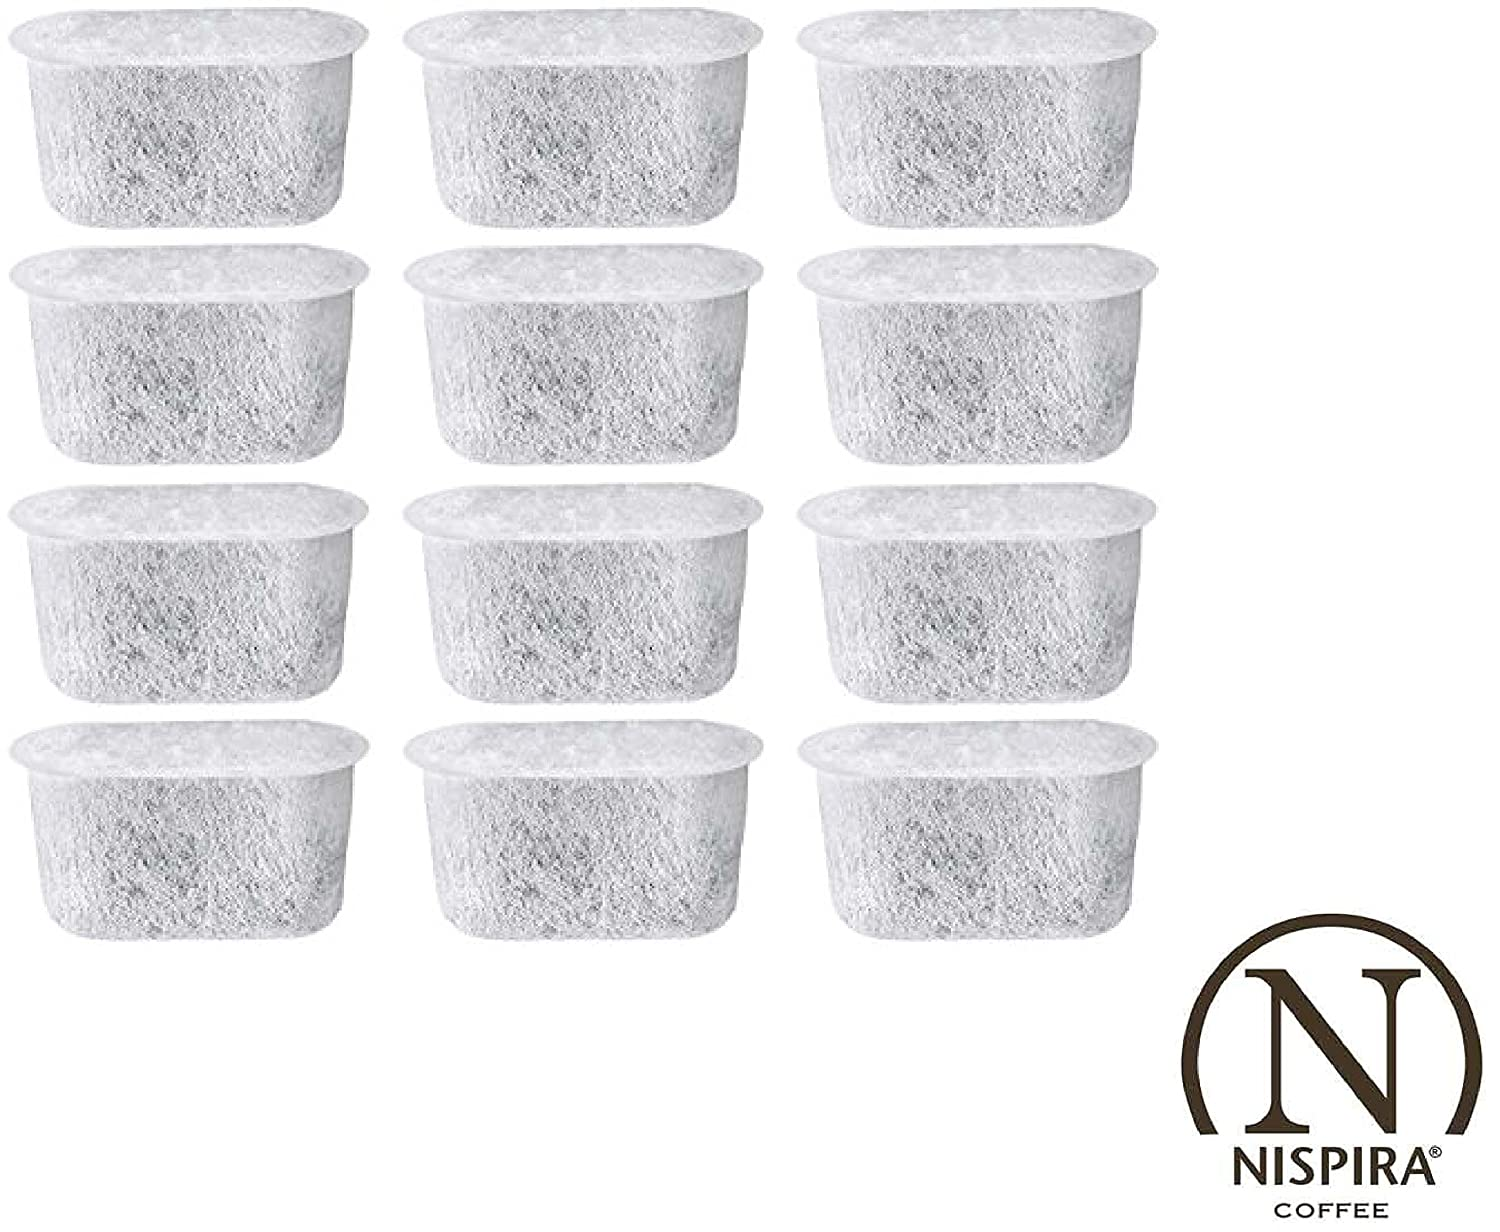 Activated Charcoal Water Filters Replacement for Cuisinart Coffee Machine Part DCC-RWF By NISPIRA - Set of 12 filters NISDCC12